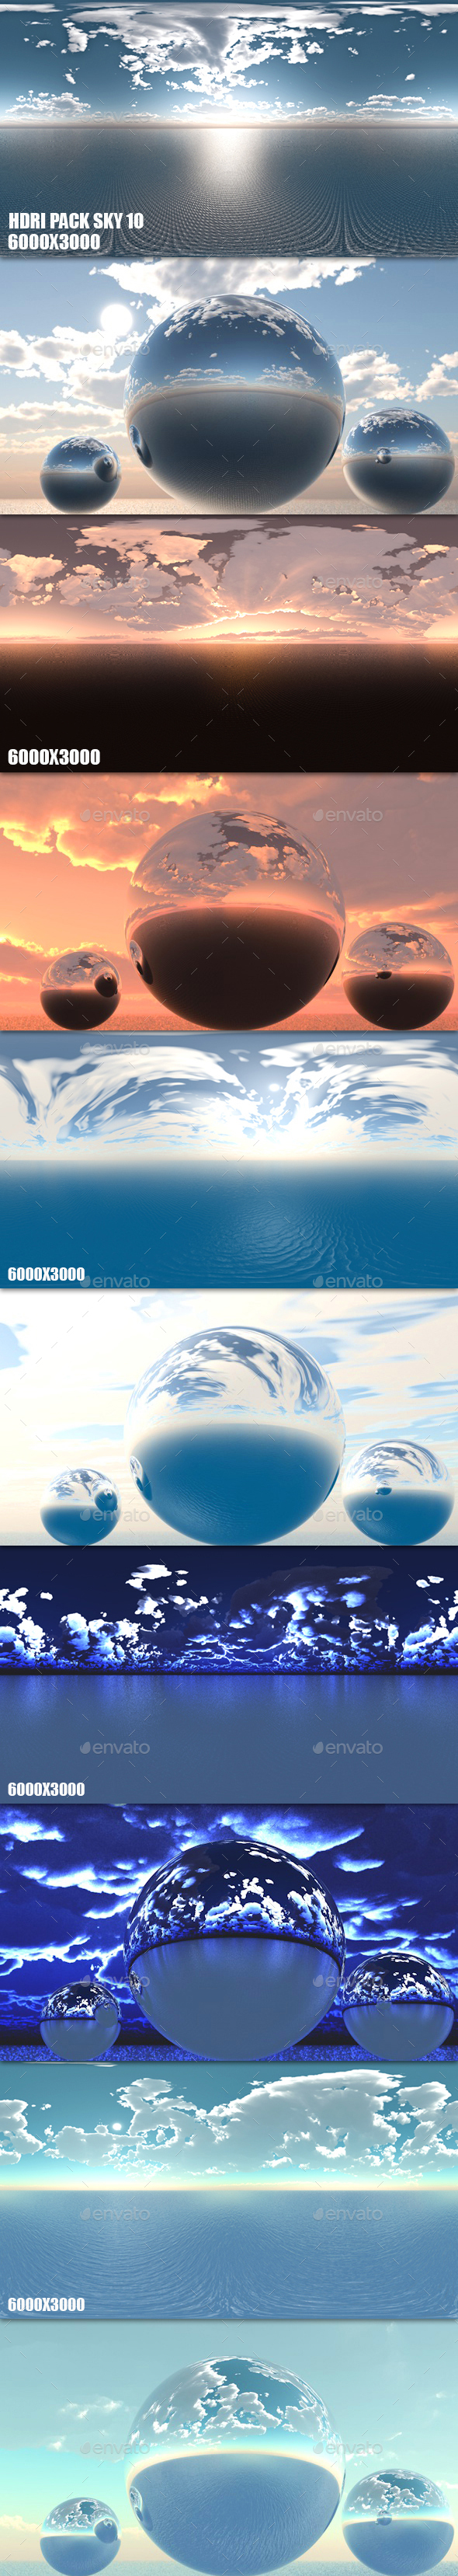 HDRI Pack Sky 10 - 3DOcean Item for Sale